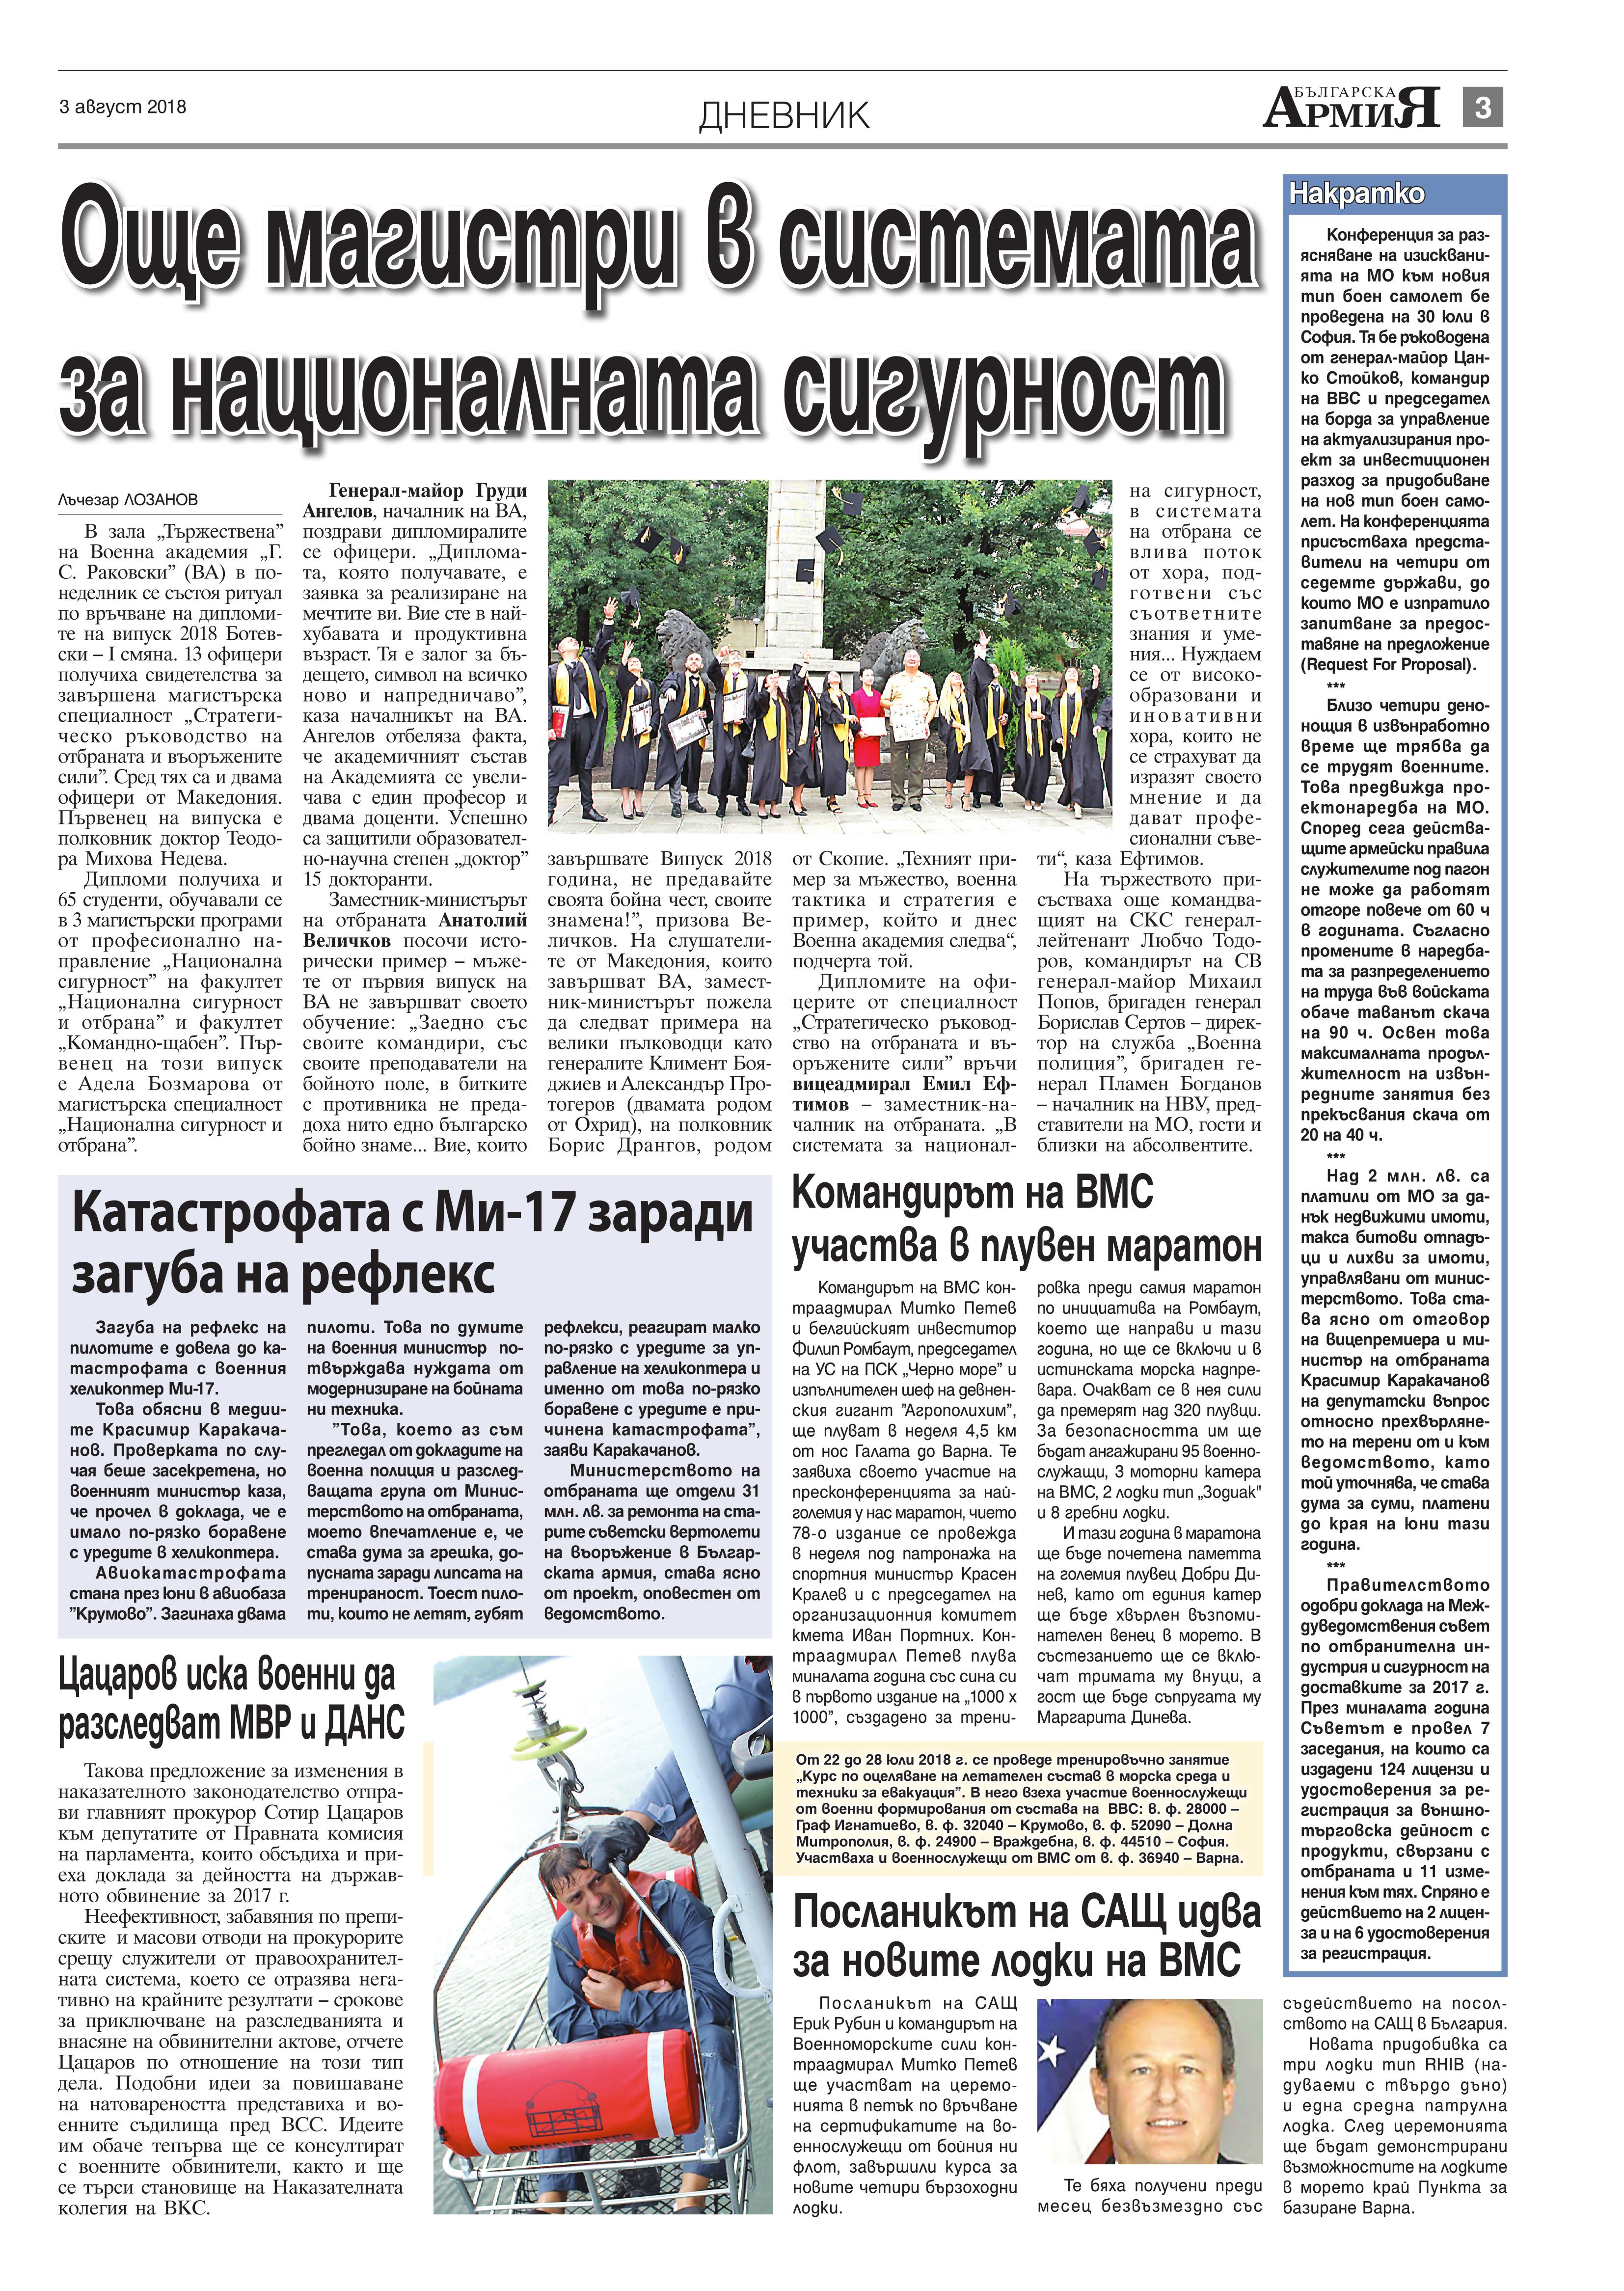 https://armymedia.bg/wp-content/uploads/2015/06/03.page1_-57.jpg